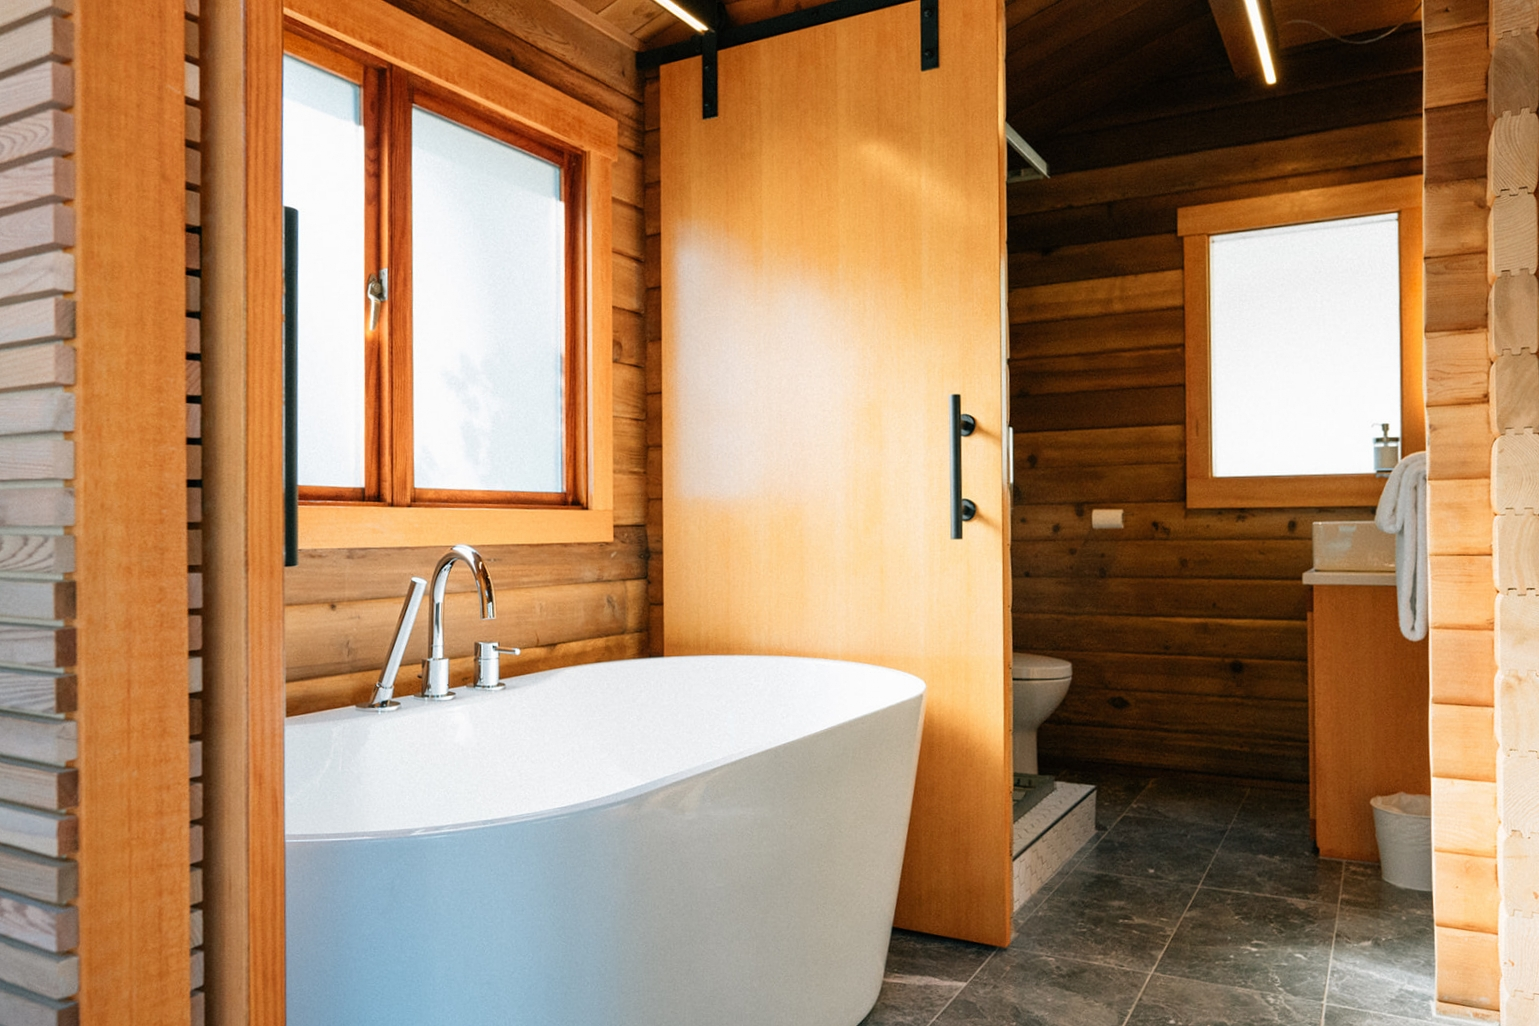 Focal Point - The small but luxurious bathrooms have grey marble heated floors, deep soaker tubs, custom douglas fir vanities with quartz counters and vessel sink, LED backlit arched mirrors, torched cedar pendant lighting, whitewashed cedar slatted walls and fir barn doors.